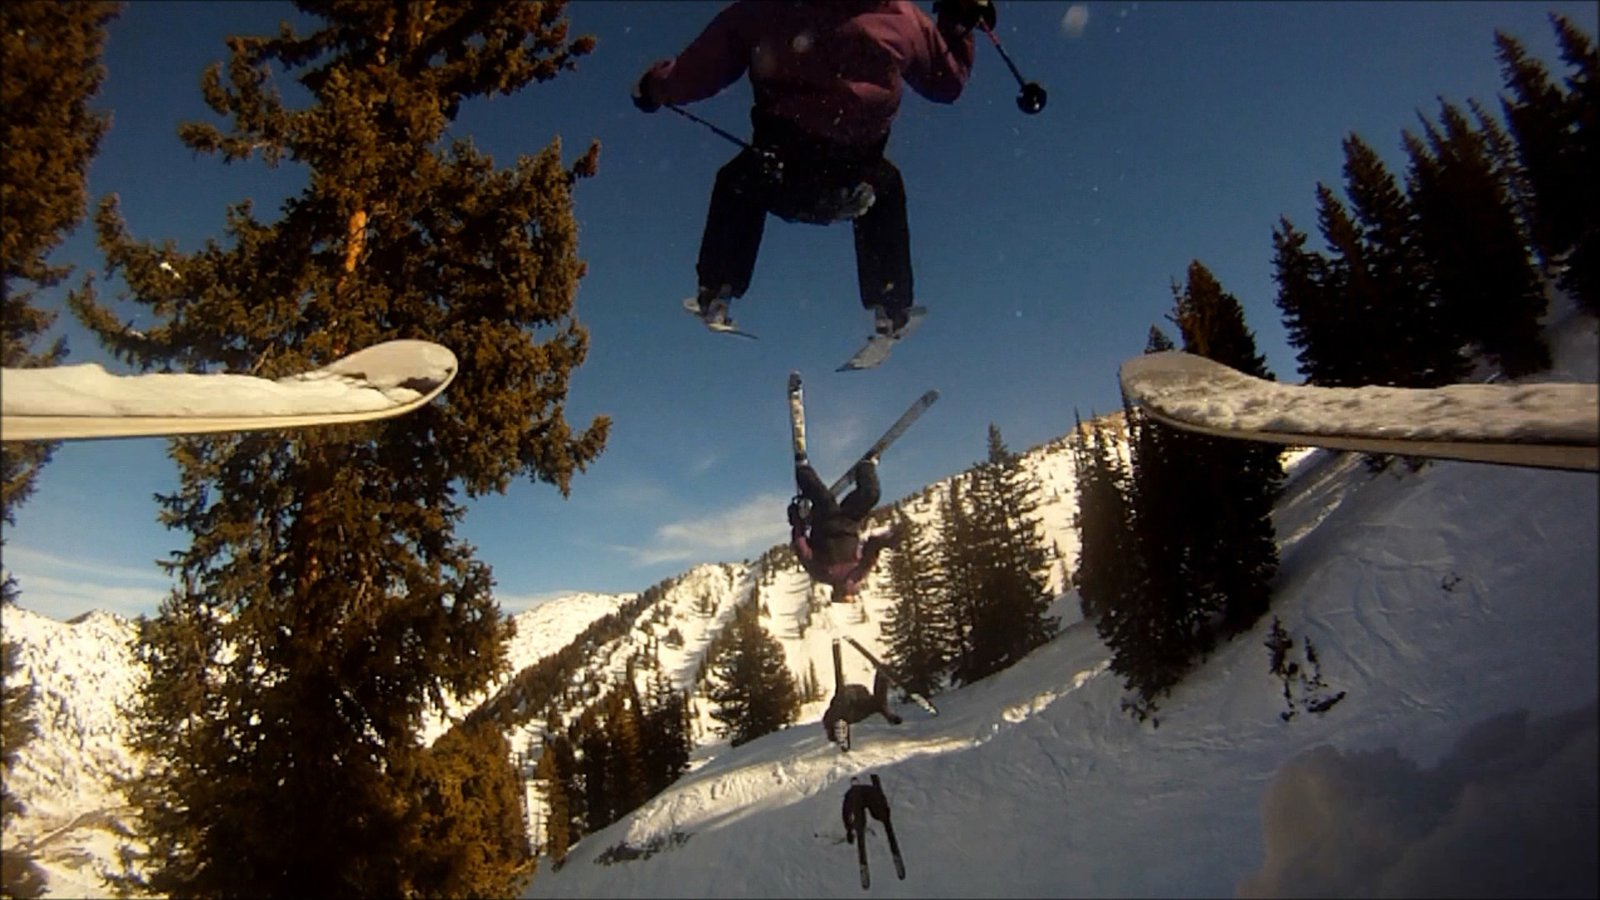 Backflip sequence